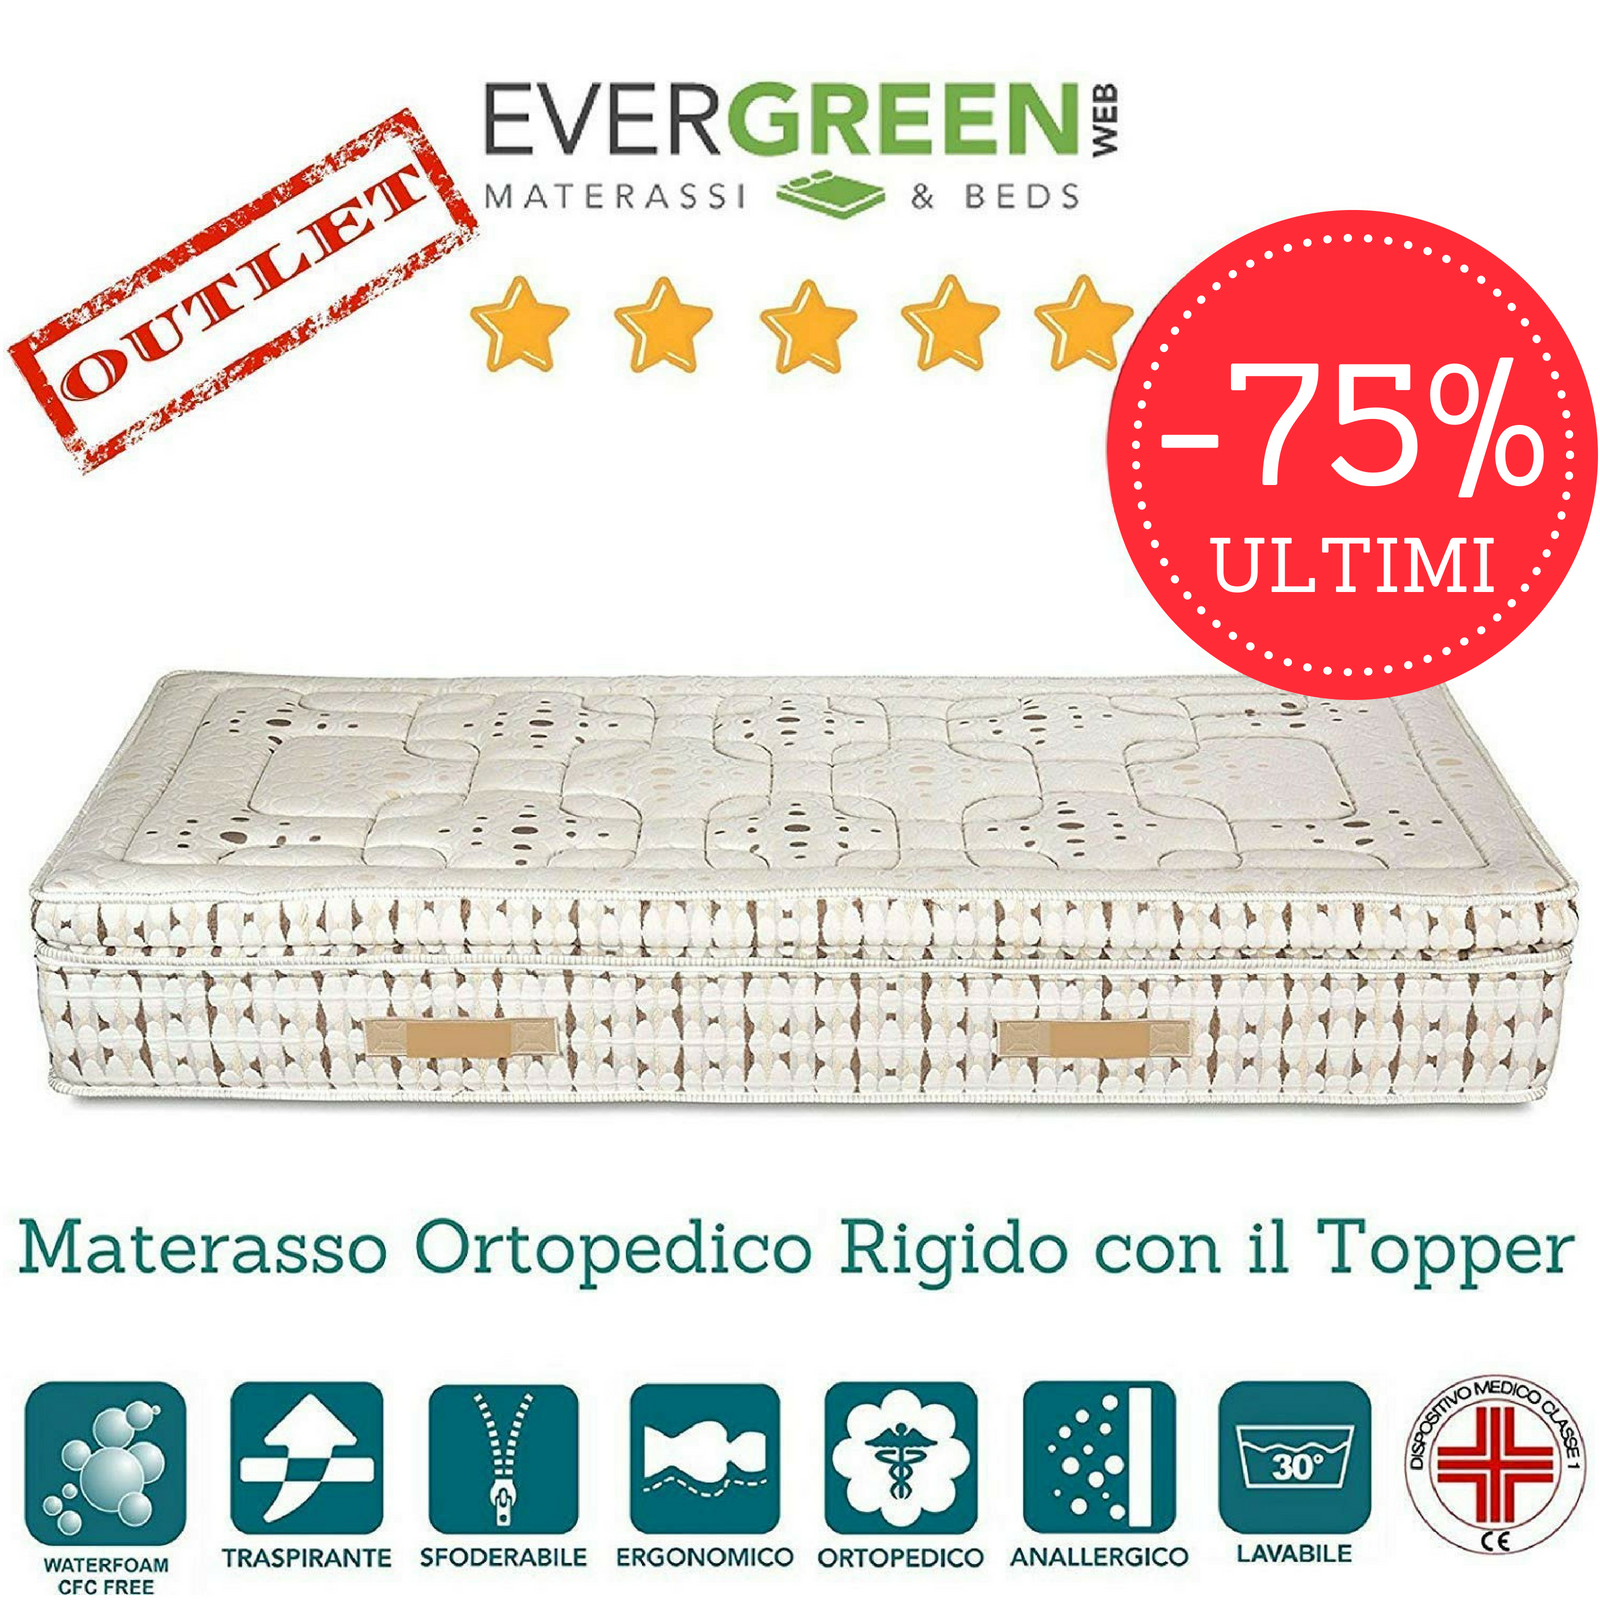 Materasso Singolo Ortopedico Rigido in Waterfoam HR con Topper alto 30 cm tessuto Sfoderabile 4 Lati Anallergico ULTIMI 5